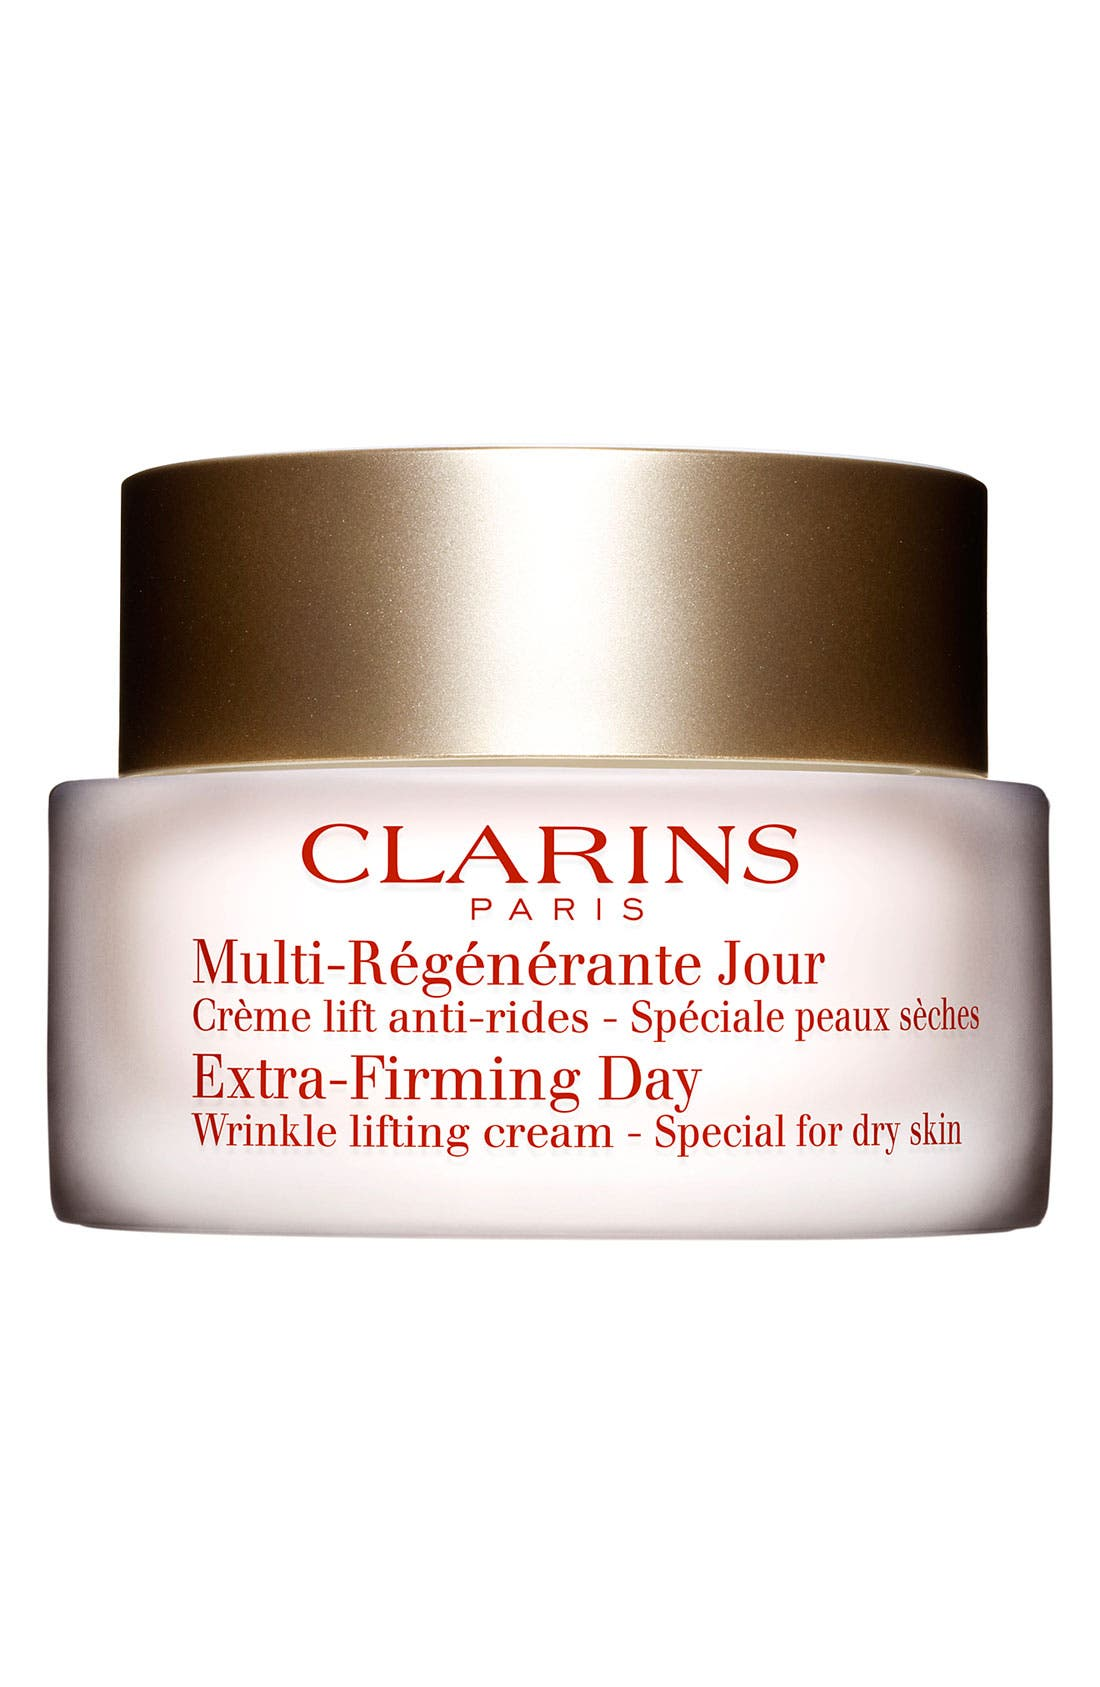 Clarins 'Extra-Firming' Day Wrinkle Lifting Cream for Dry Skin